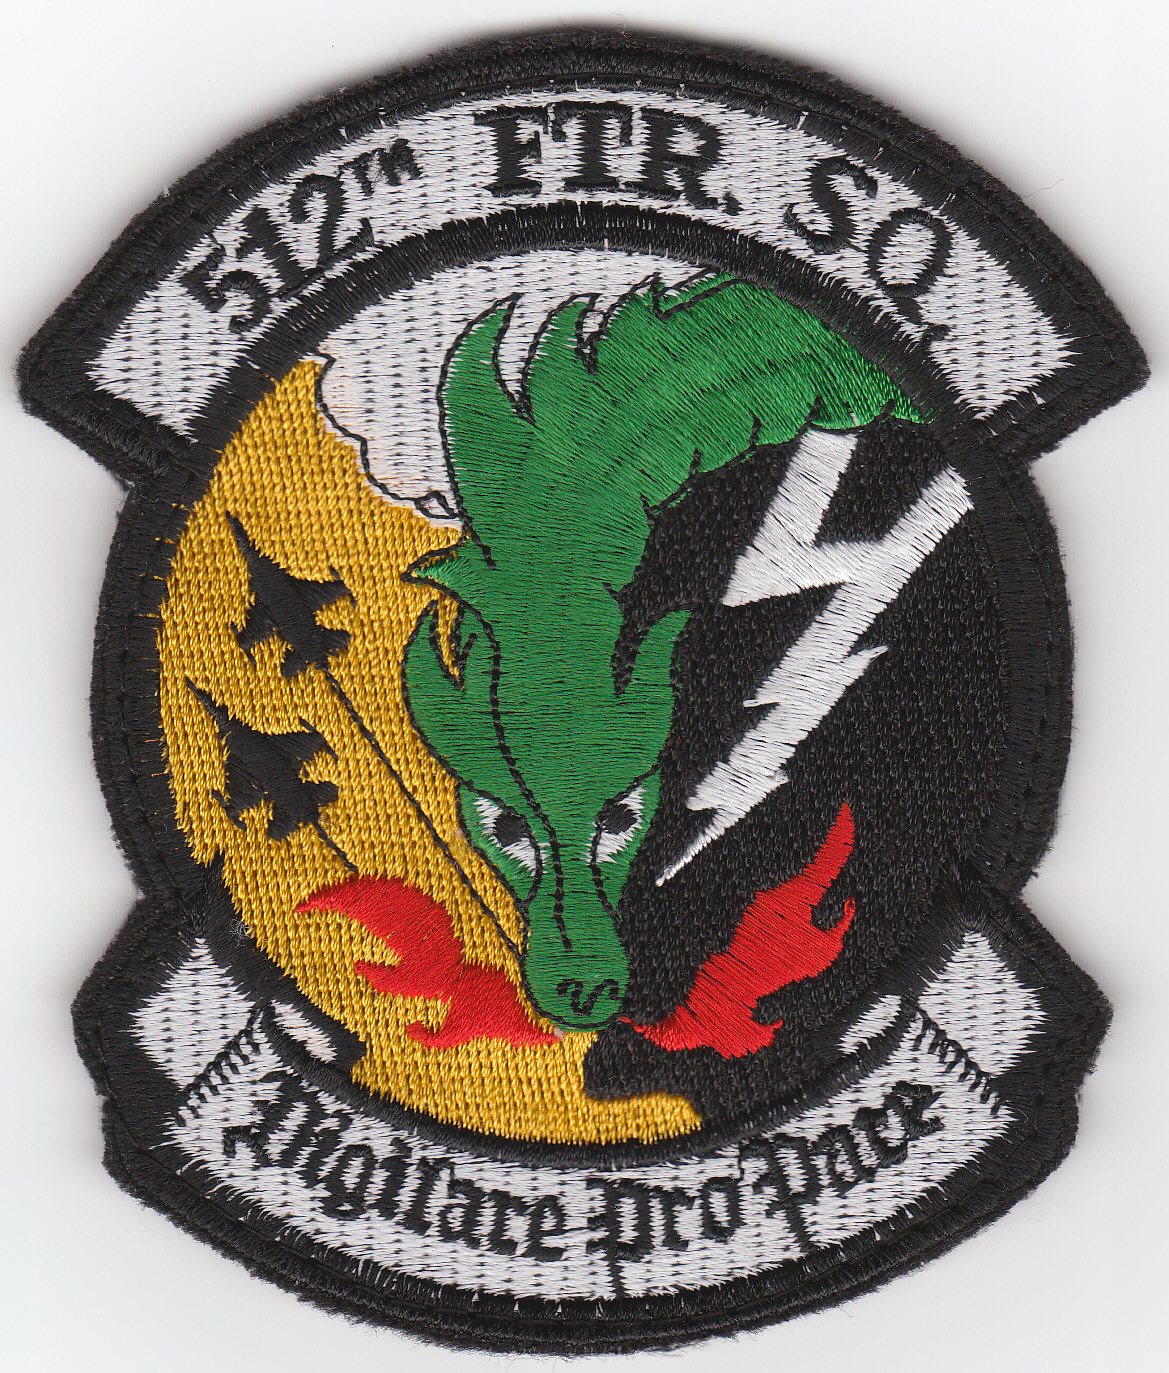 Fighter Squadron Logos The 512th Fighter Squadron